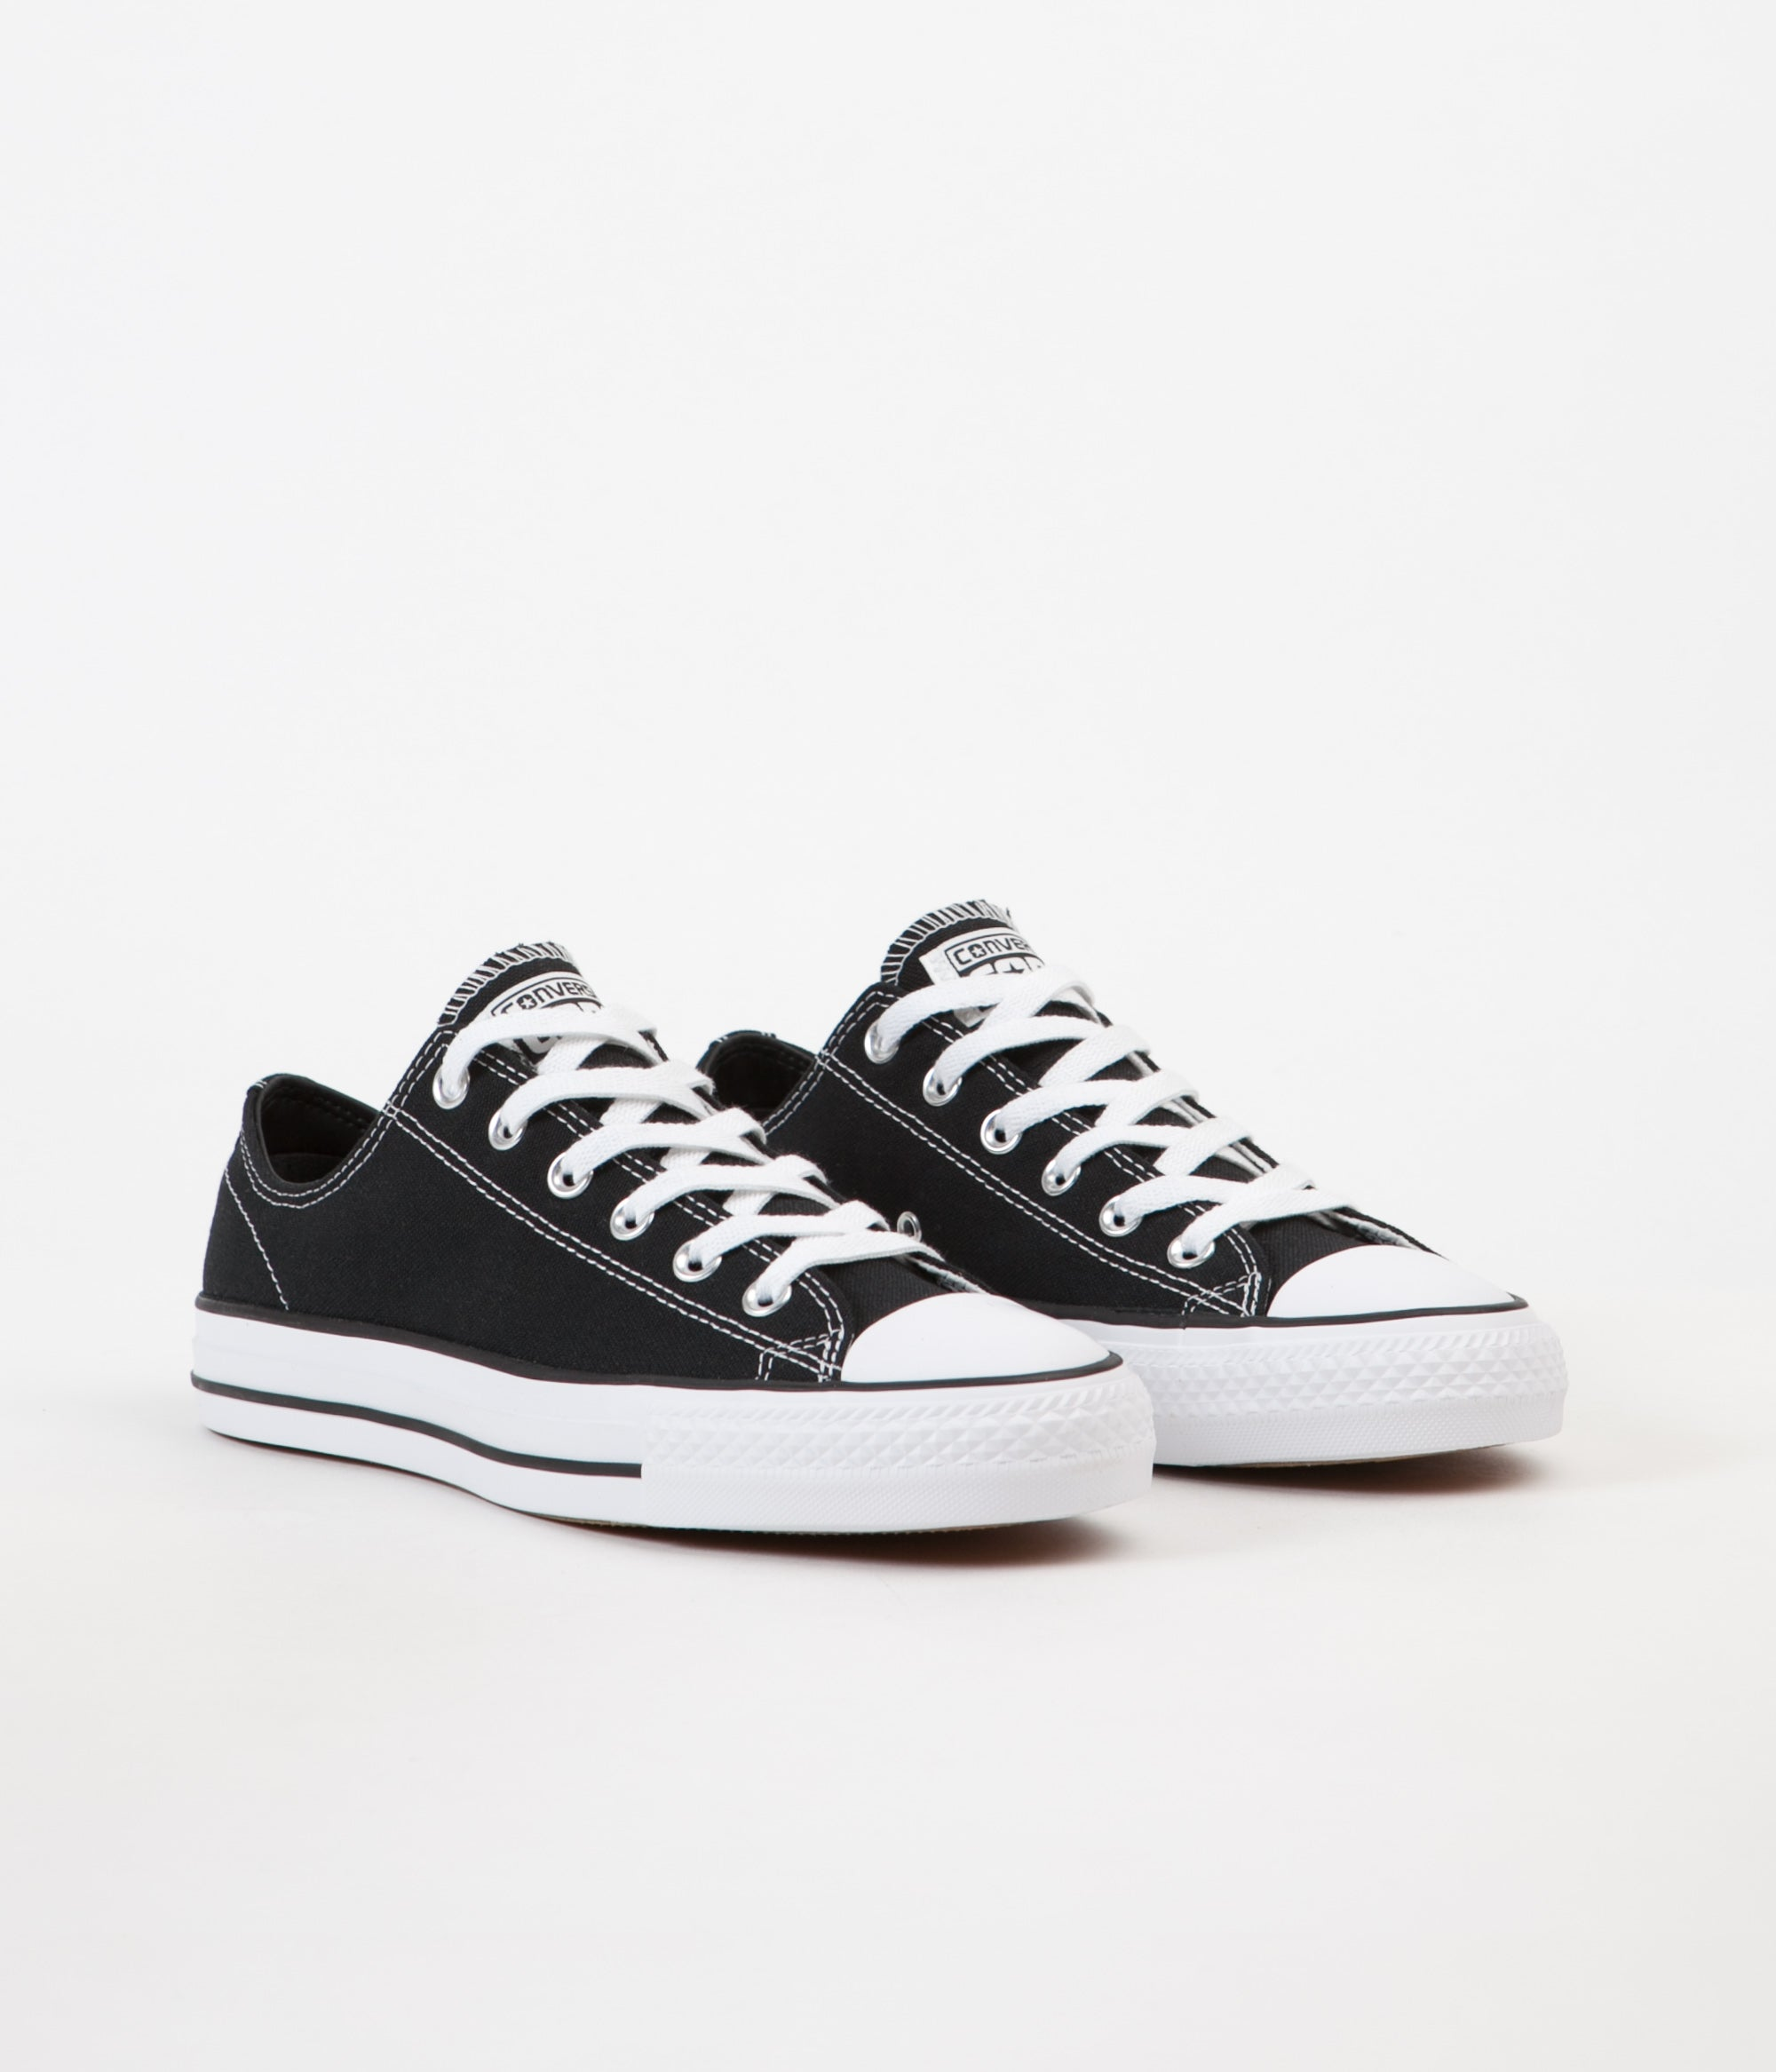 Converse CTAS Pro Ox Canvas Shoes Black Black White